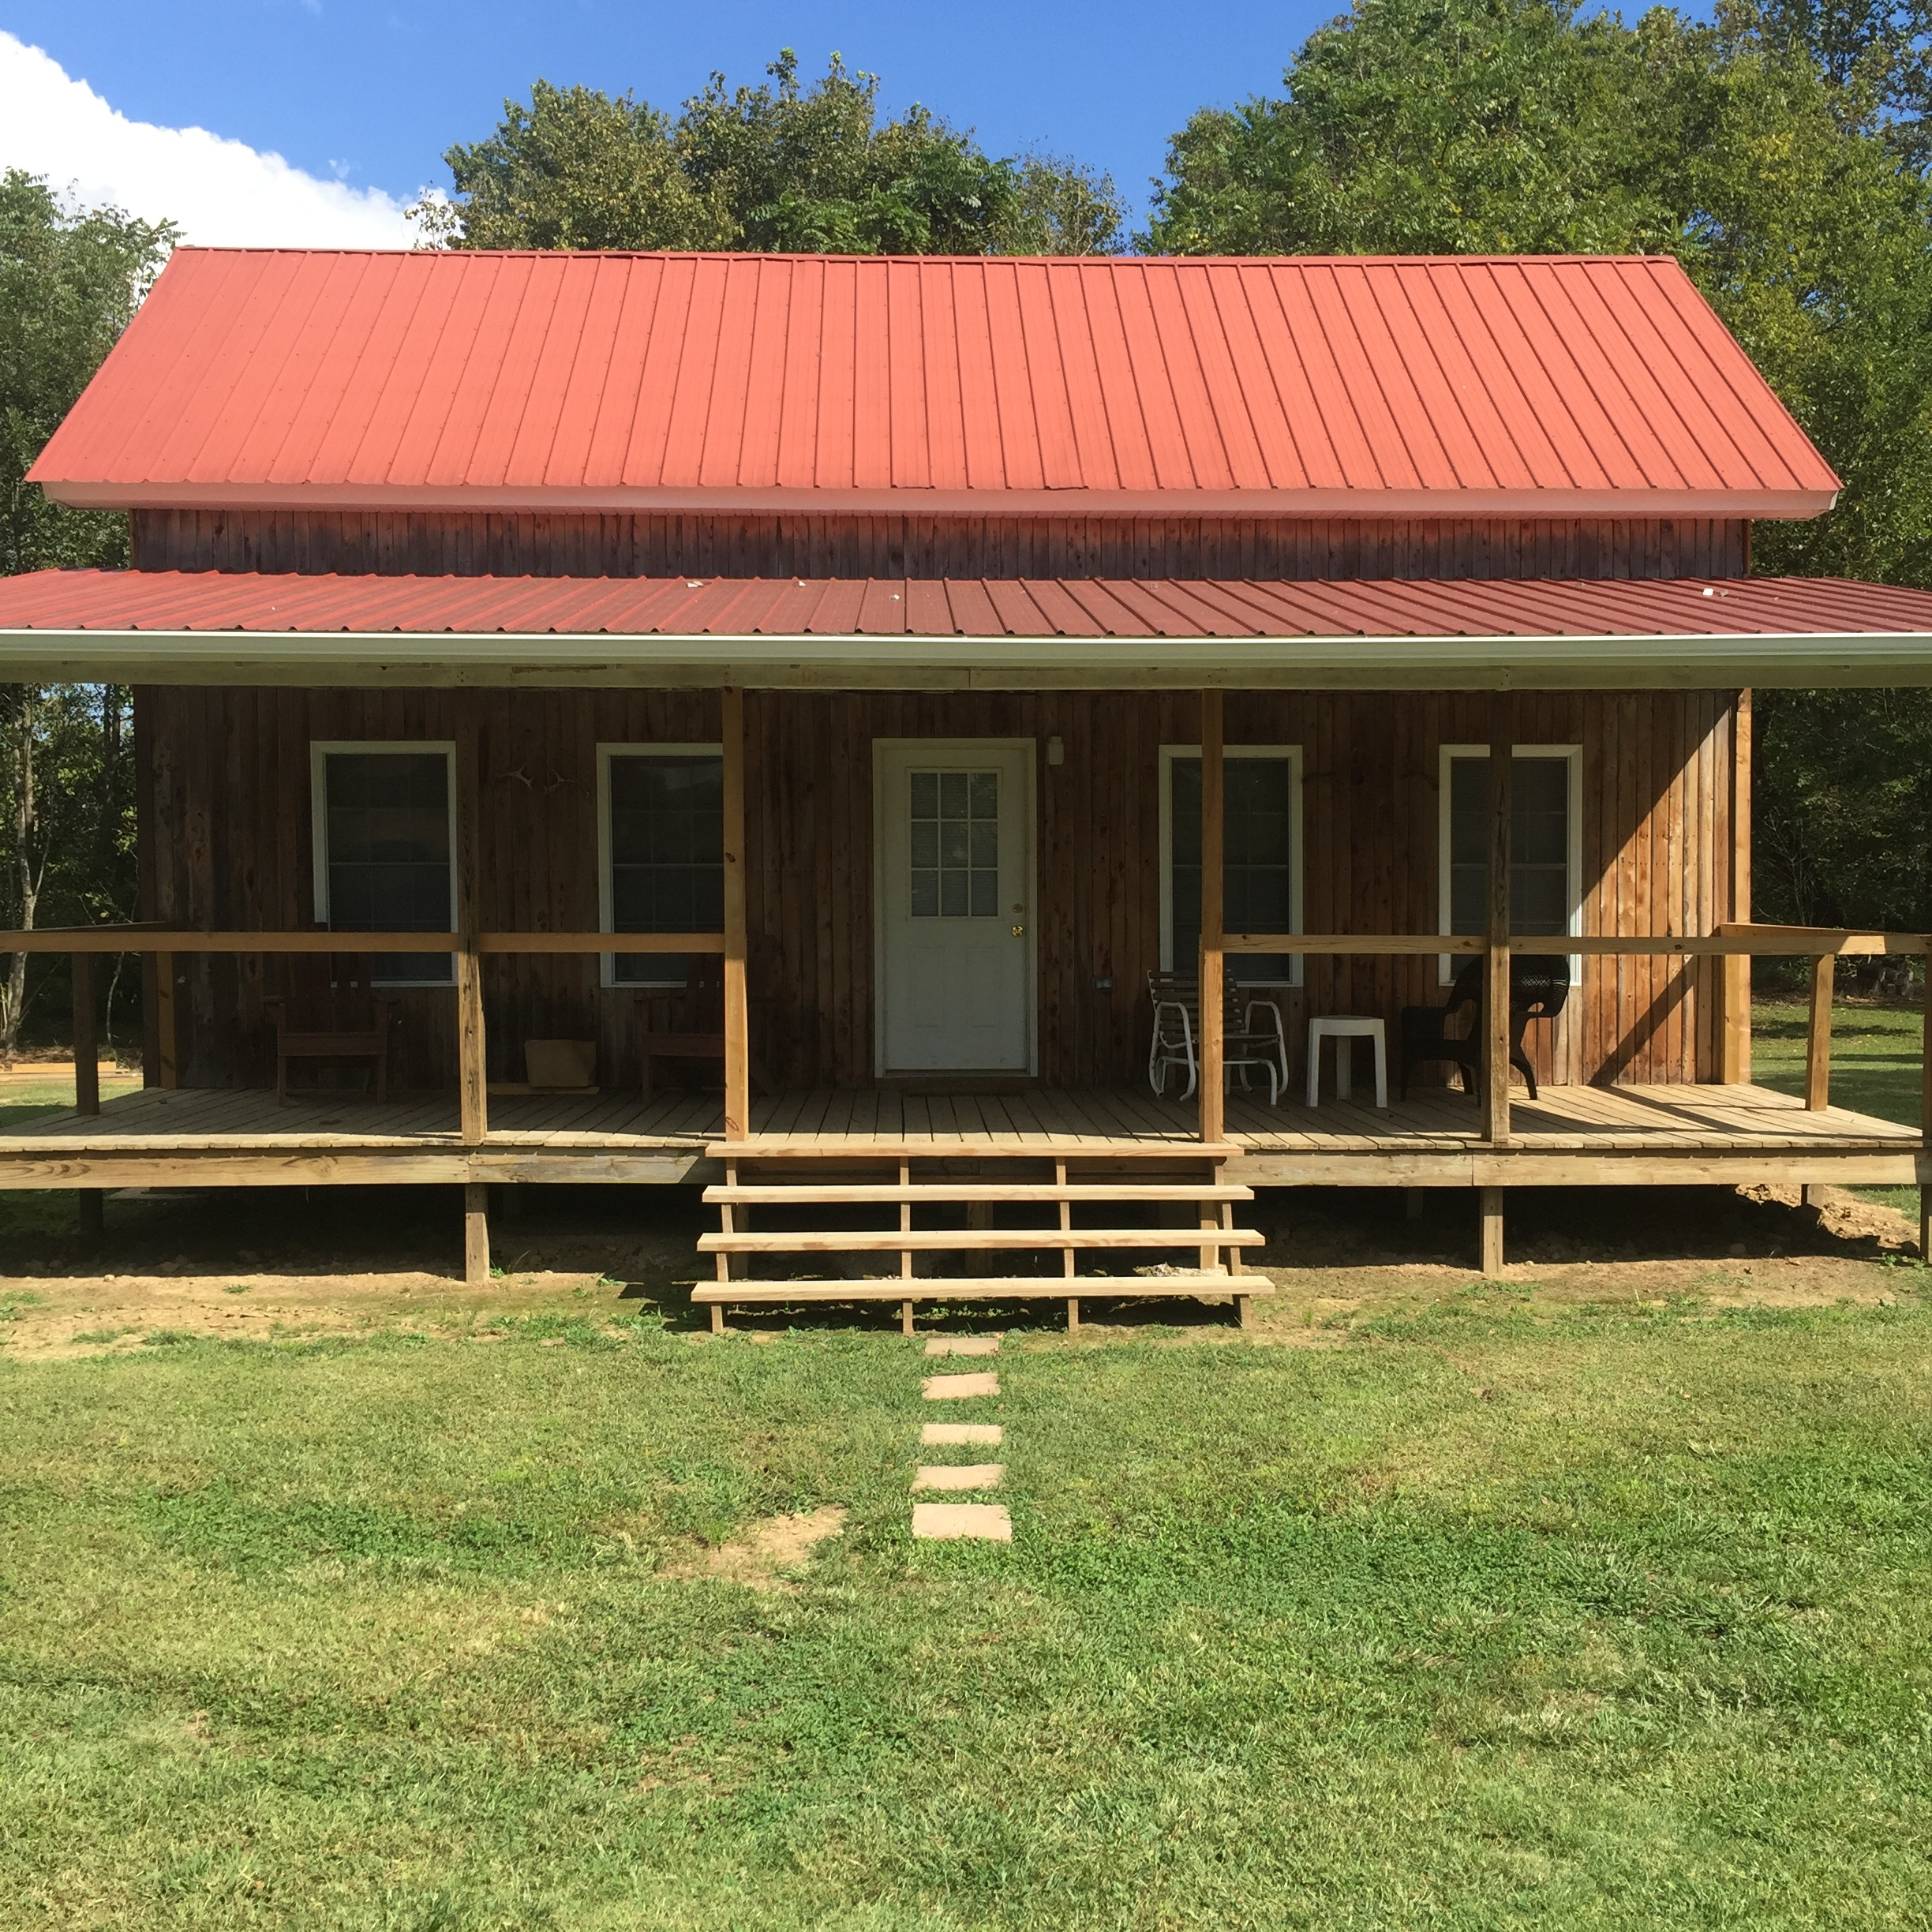 Mickey's Cabin - This newly remodeled and updated cabin has comfort and convenience. Located near a private boat ramp that serves as a common put in/take out point for float trips, Mickey's is conveniently located in a quiet and remote section of the Creelsboro community, about 8 miles below Wolf Creek Dam. With